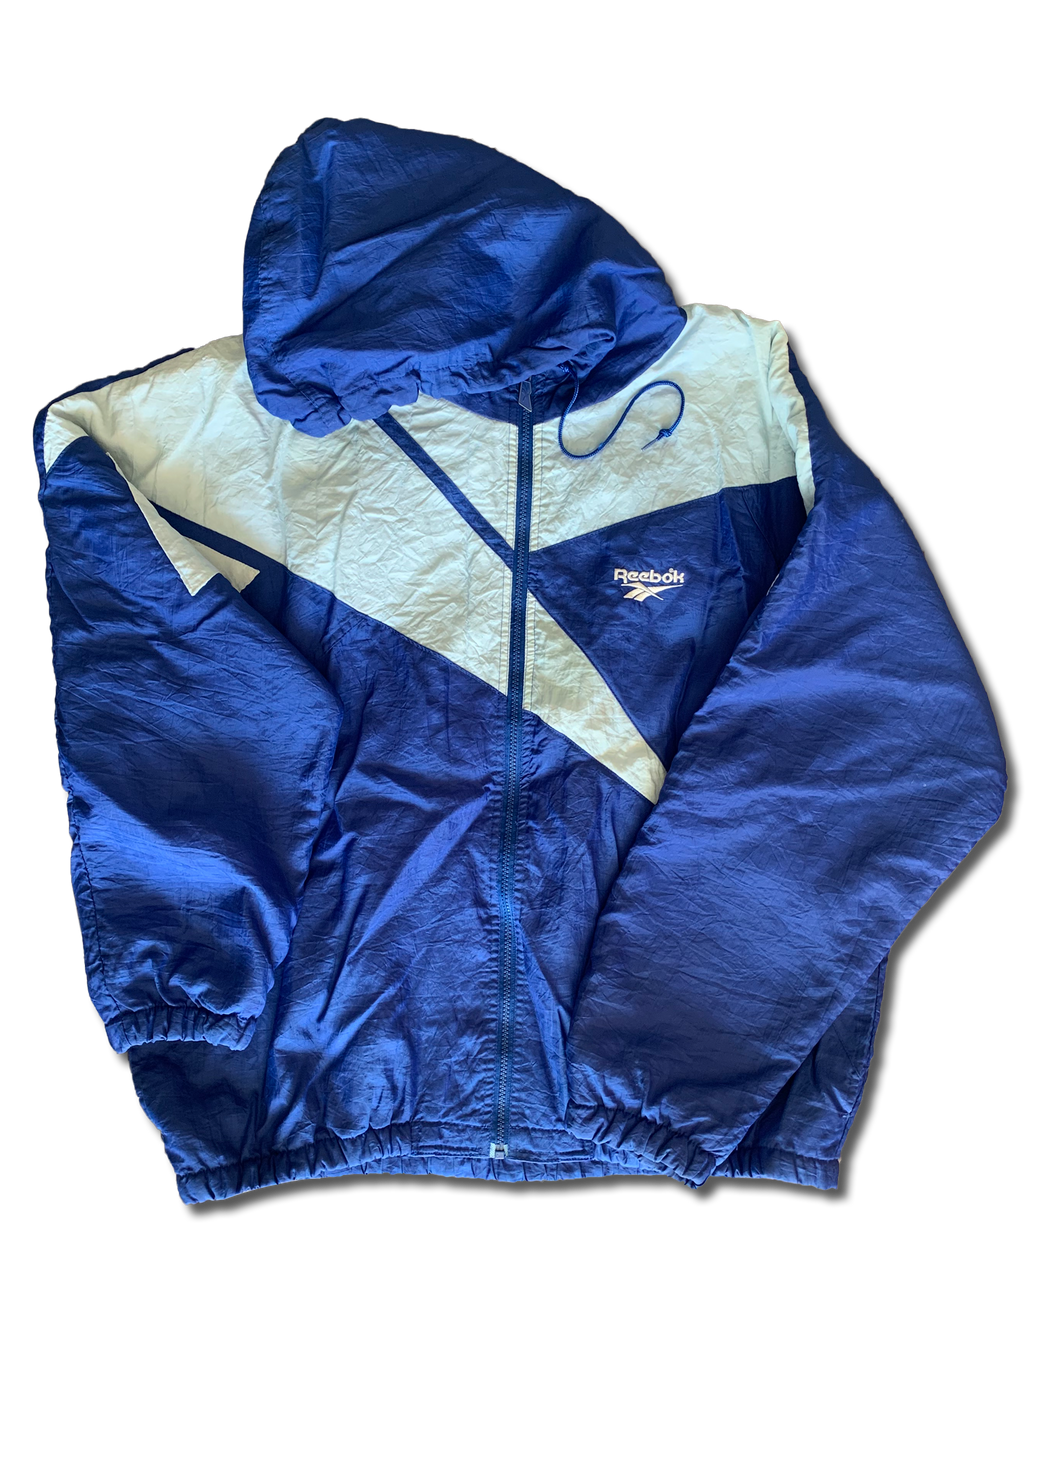 Vintage Reebok Hooded Jacket